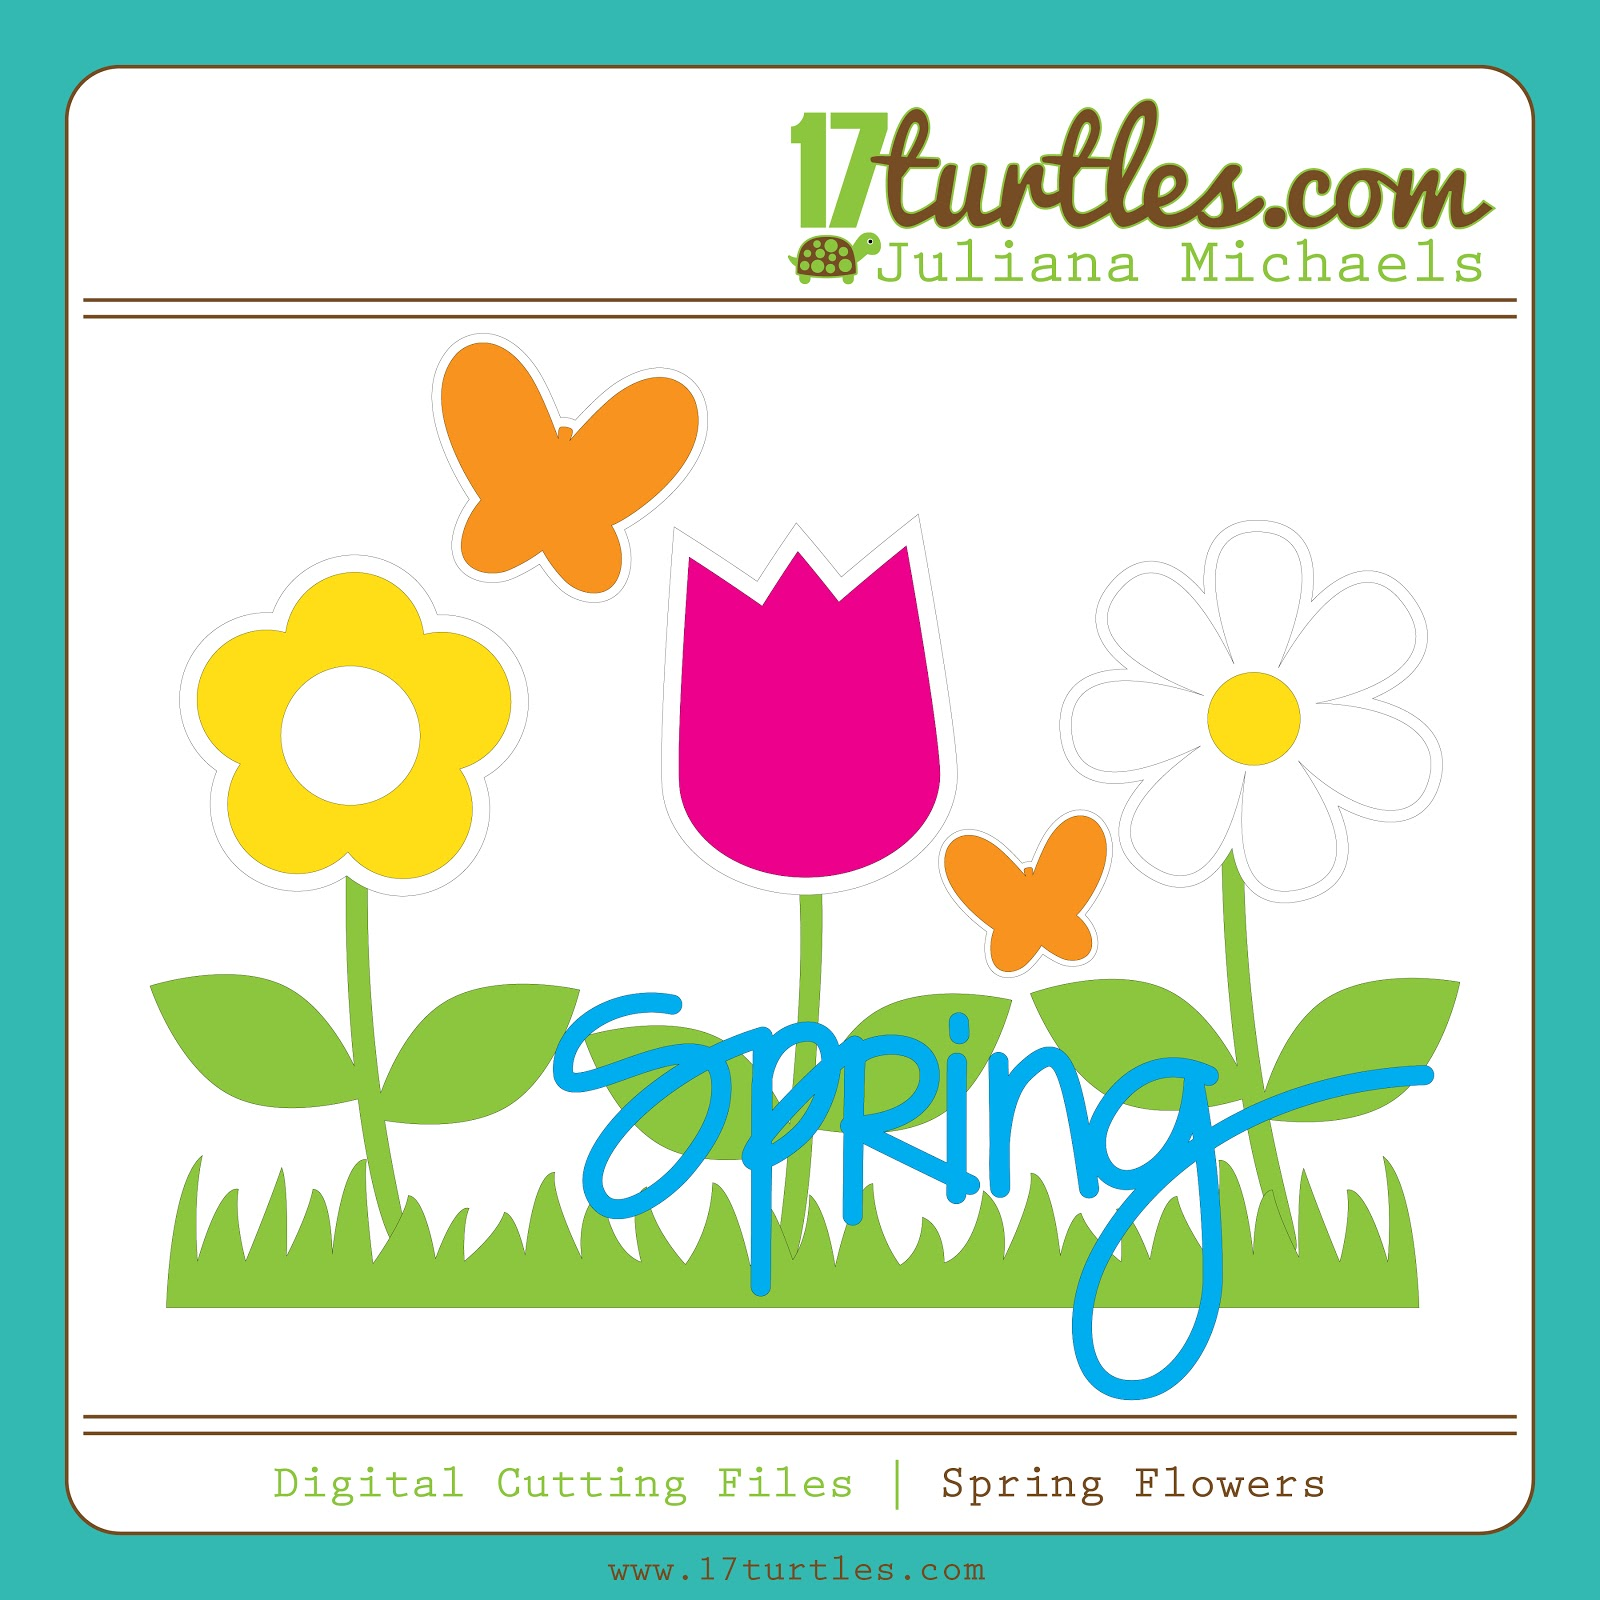 Spring Flowers Free Digital Cutting File by Juliana Michaels 17turtles.com